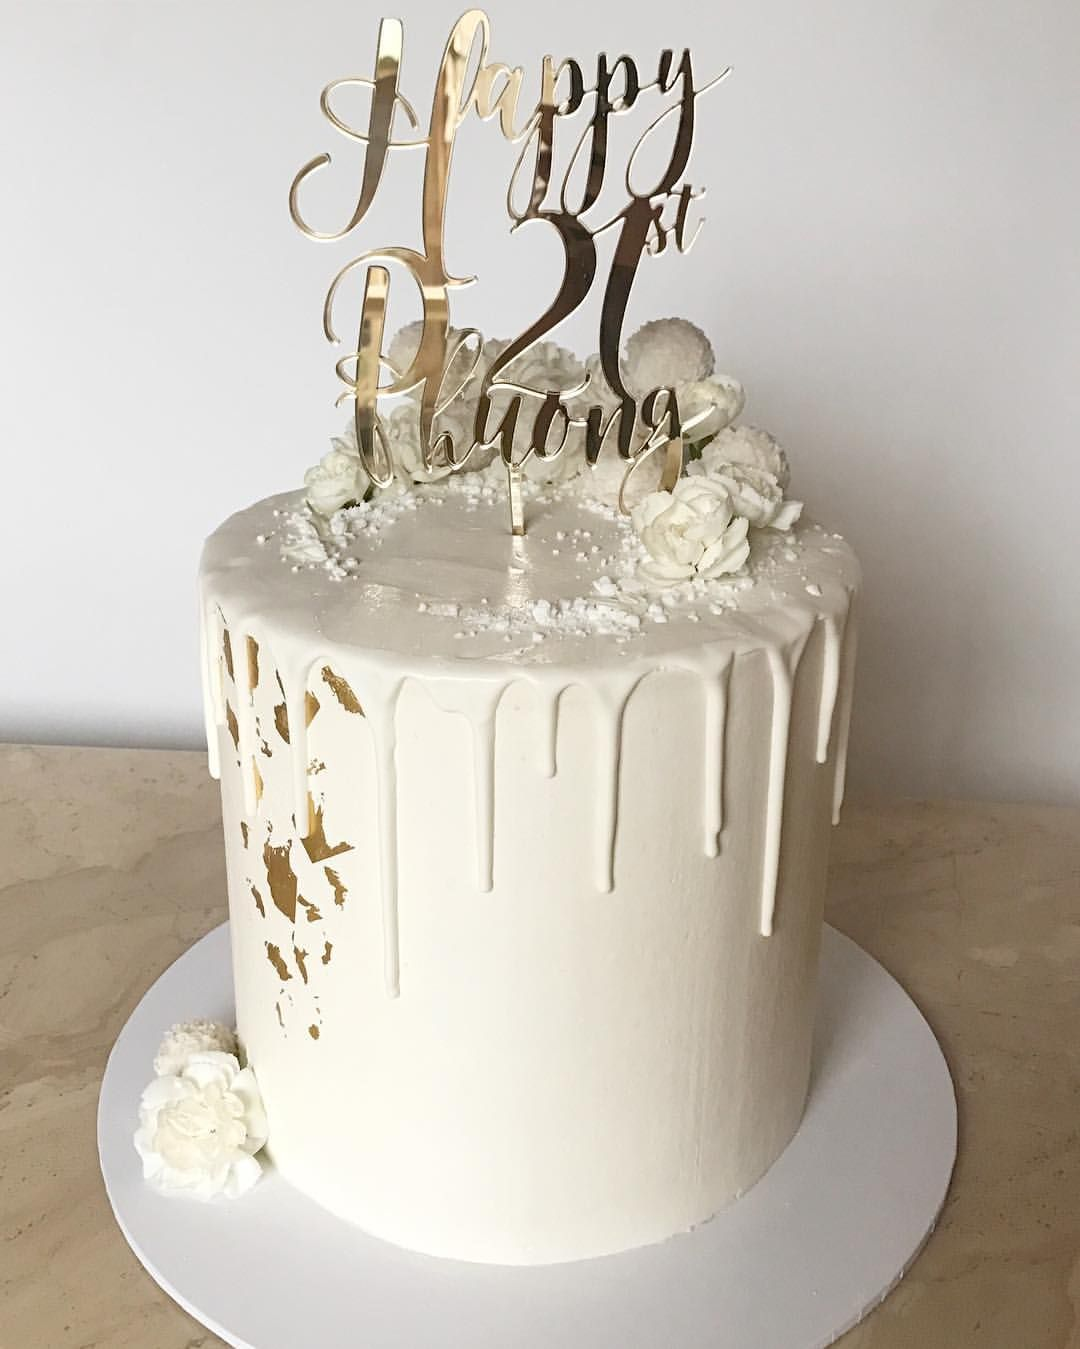 47 likes 8 comments baked envy cakes baked_envy on